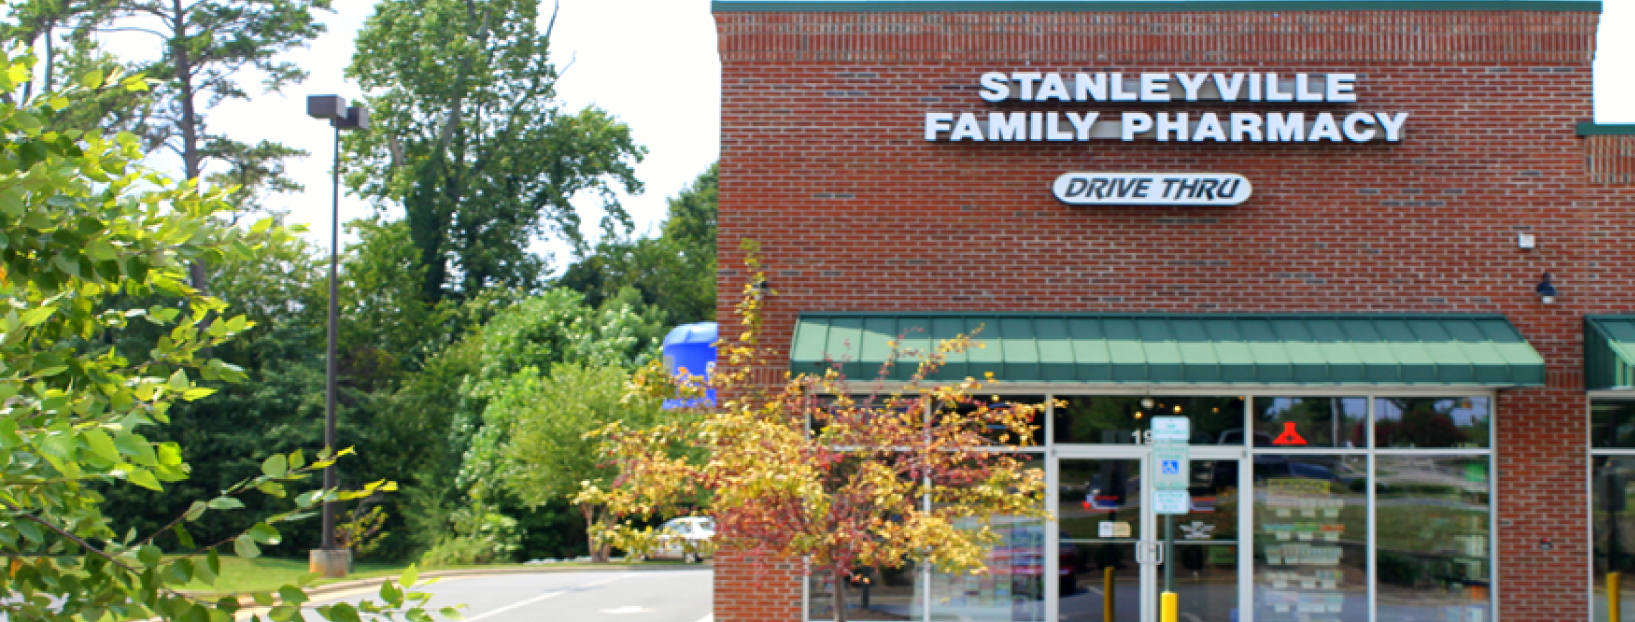 stanleyville-family-pharmacy-drive-thru-winston-salem-north-carolina